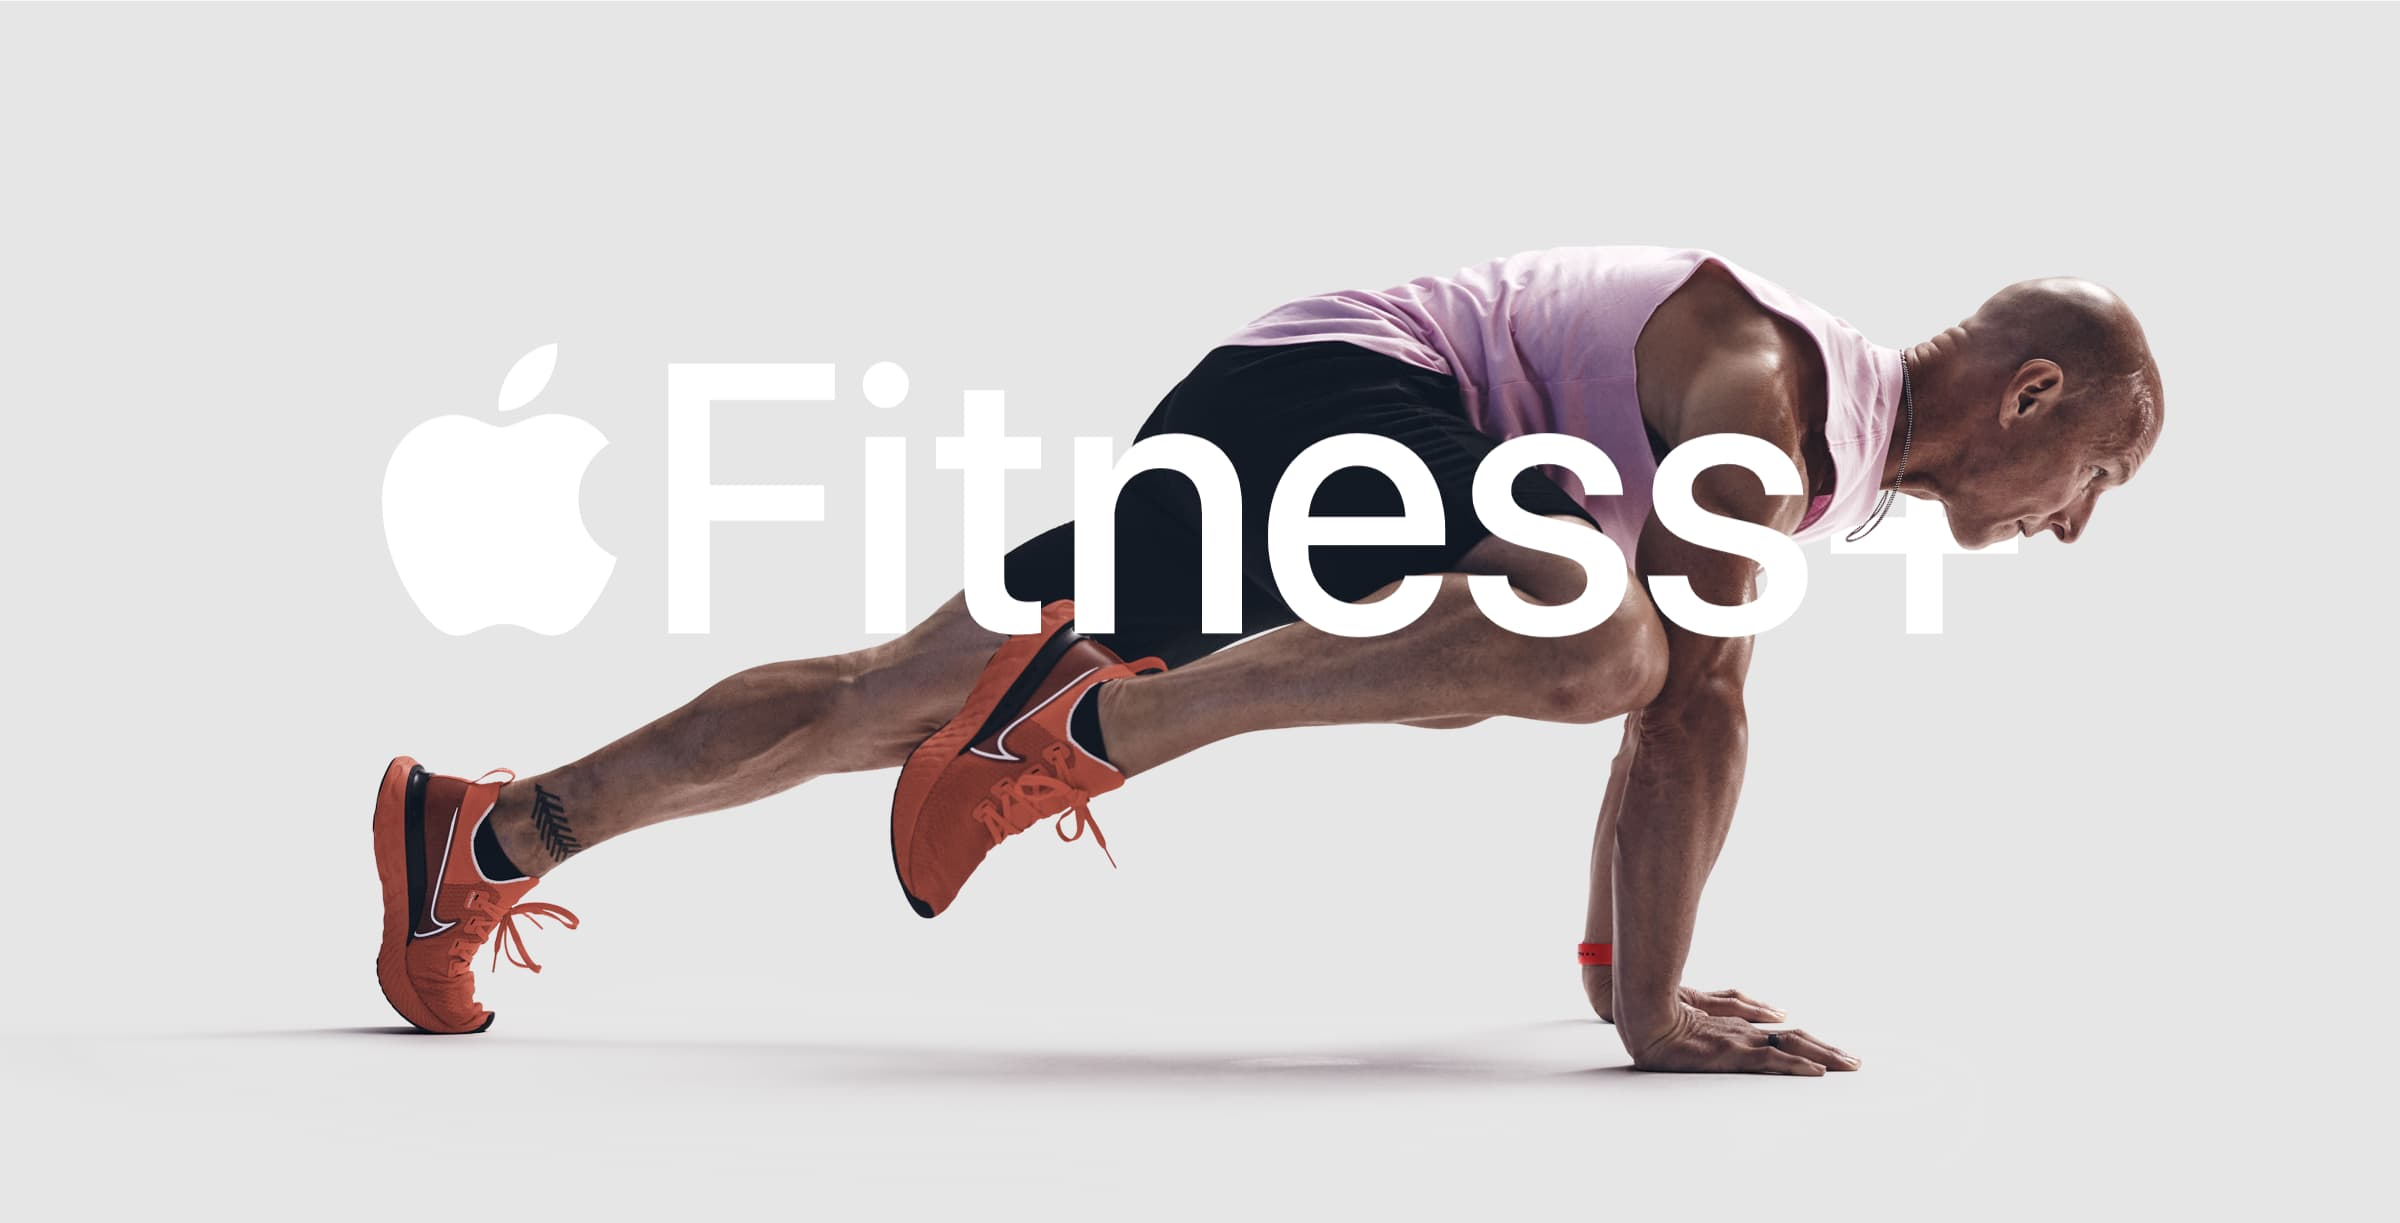 A graphic promoting Apple Fitness+